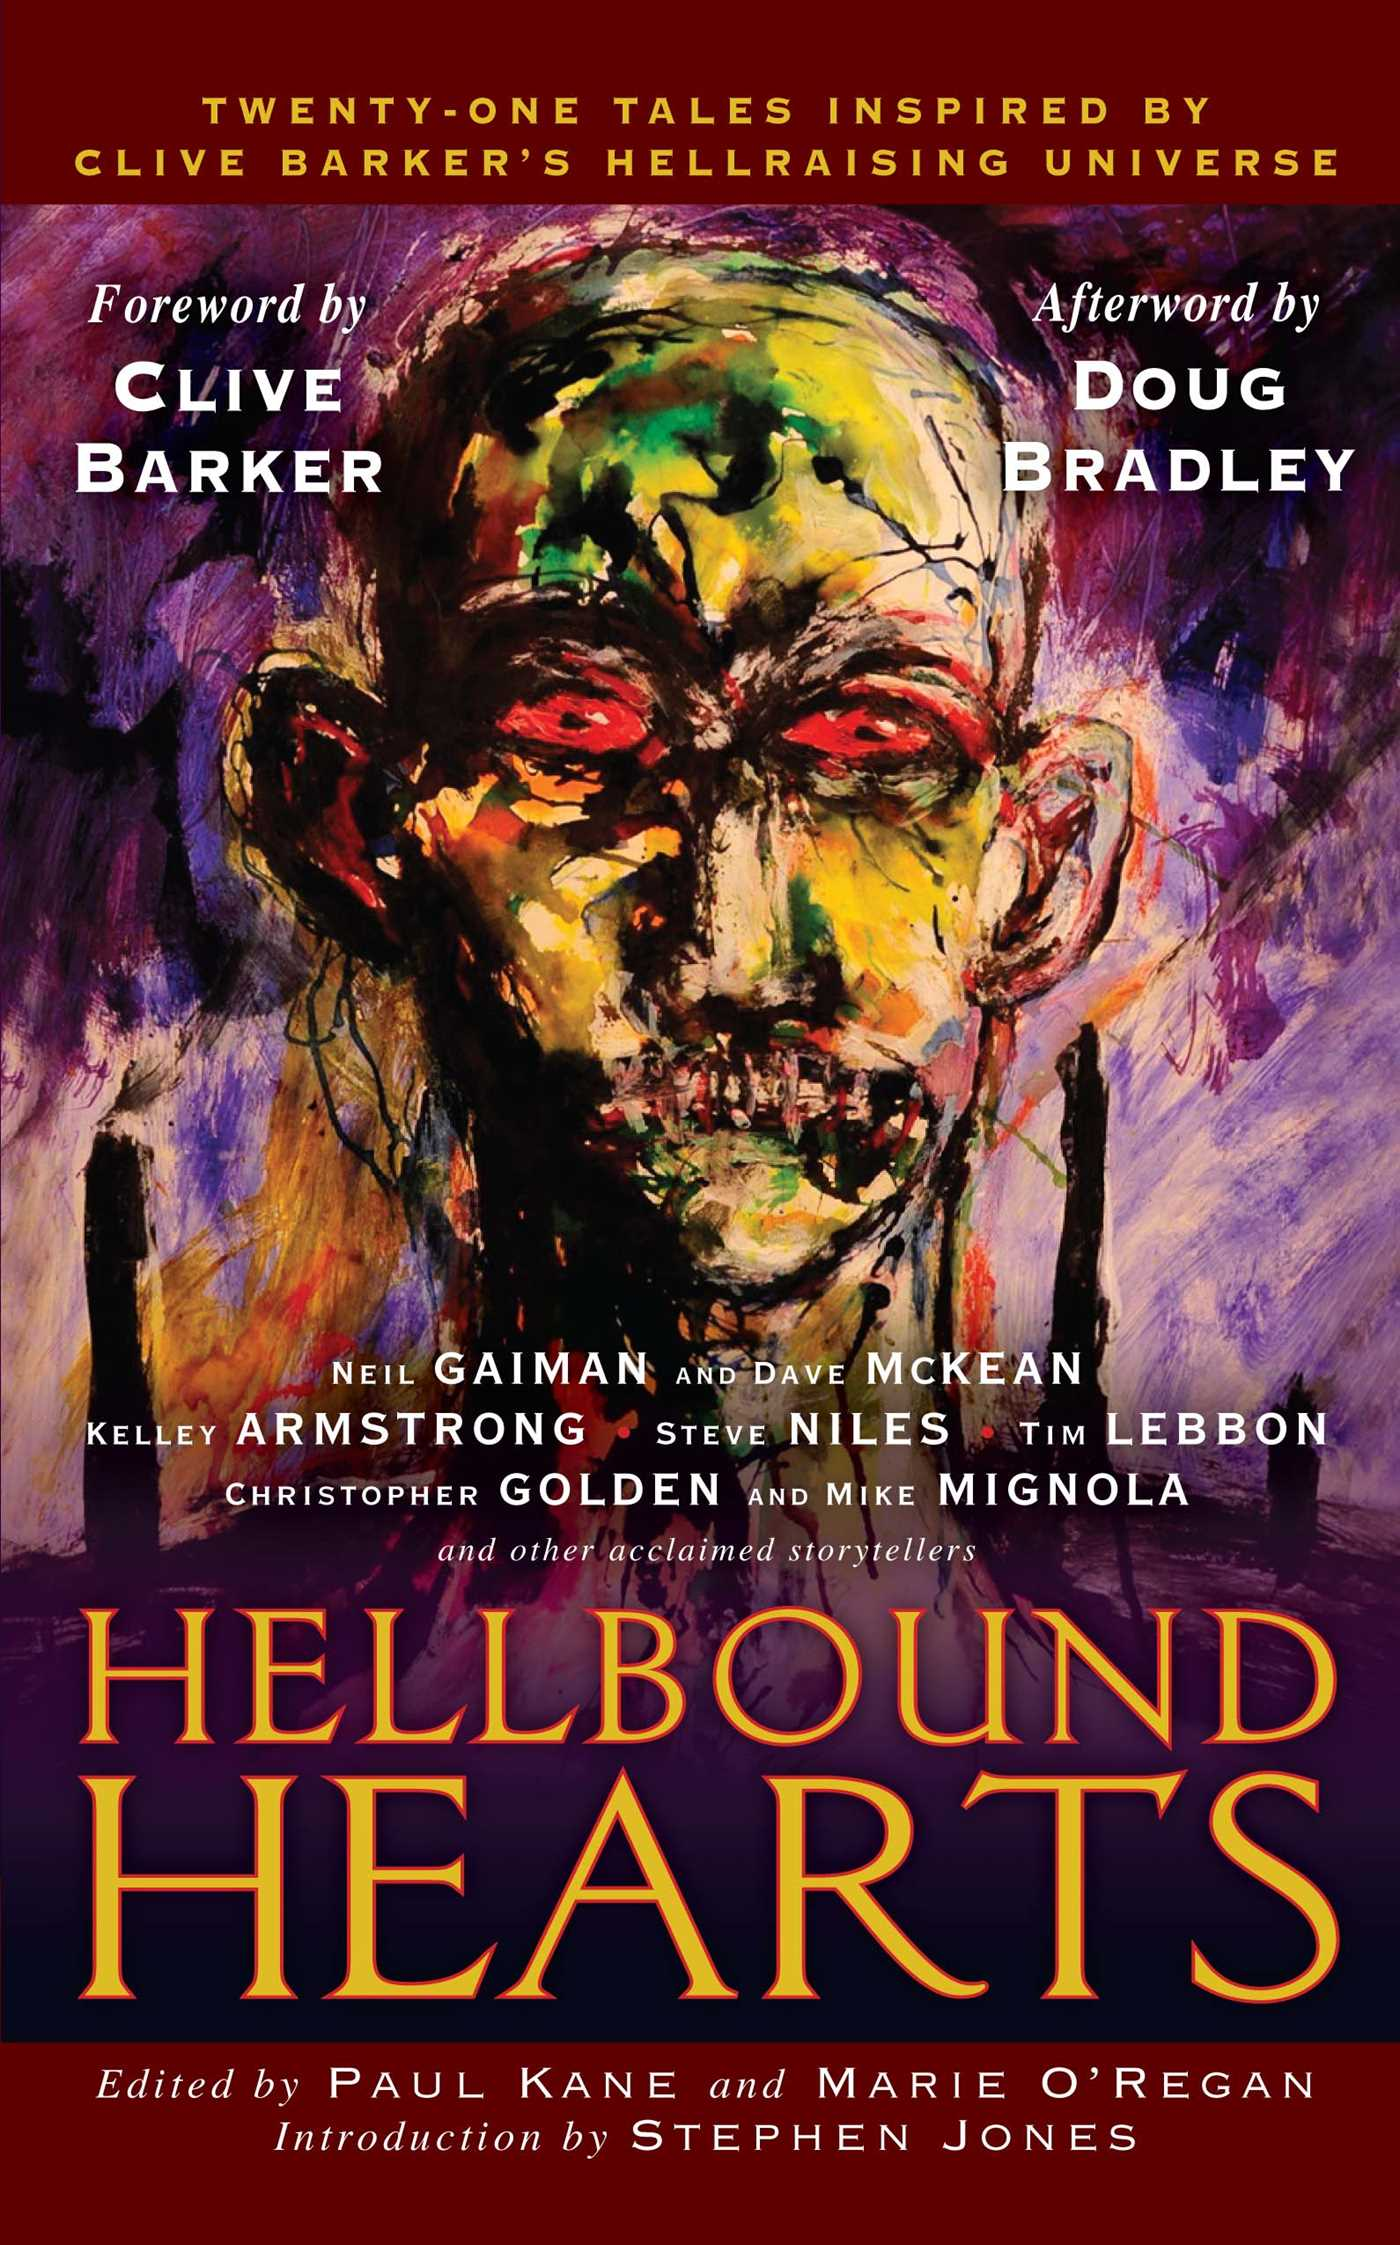 Hellbound-hearts-9781439140901_hr